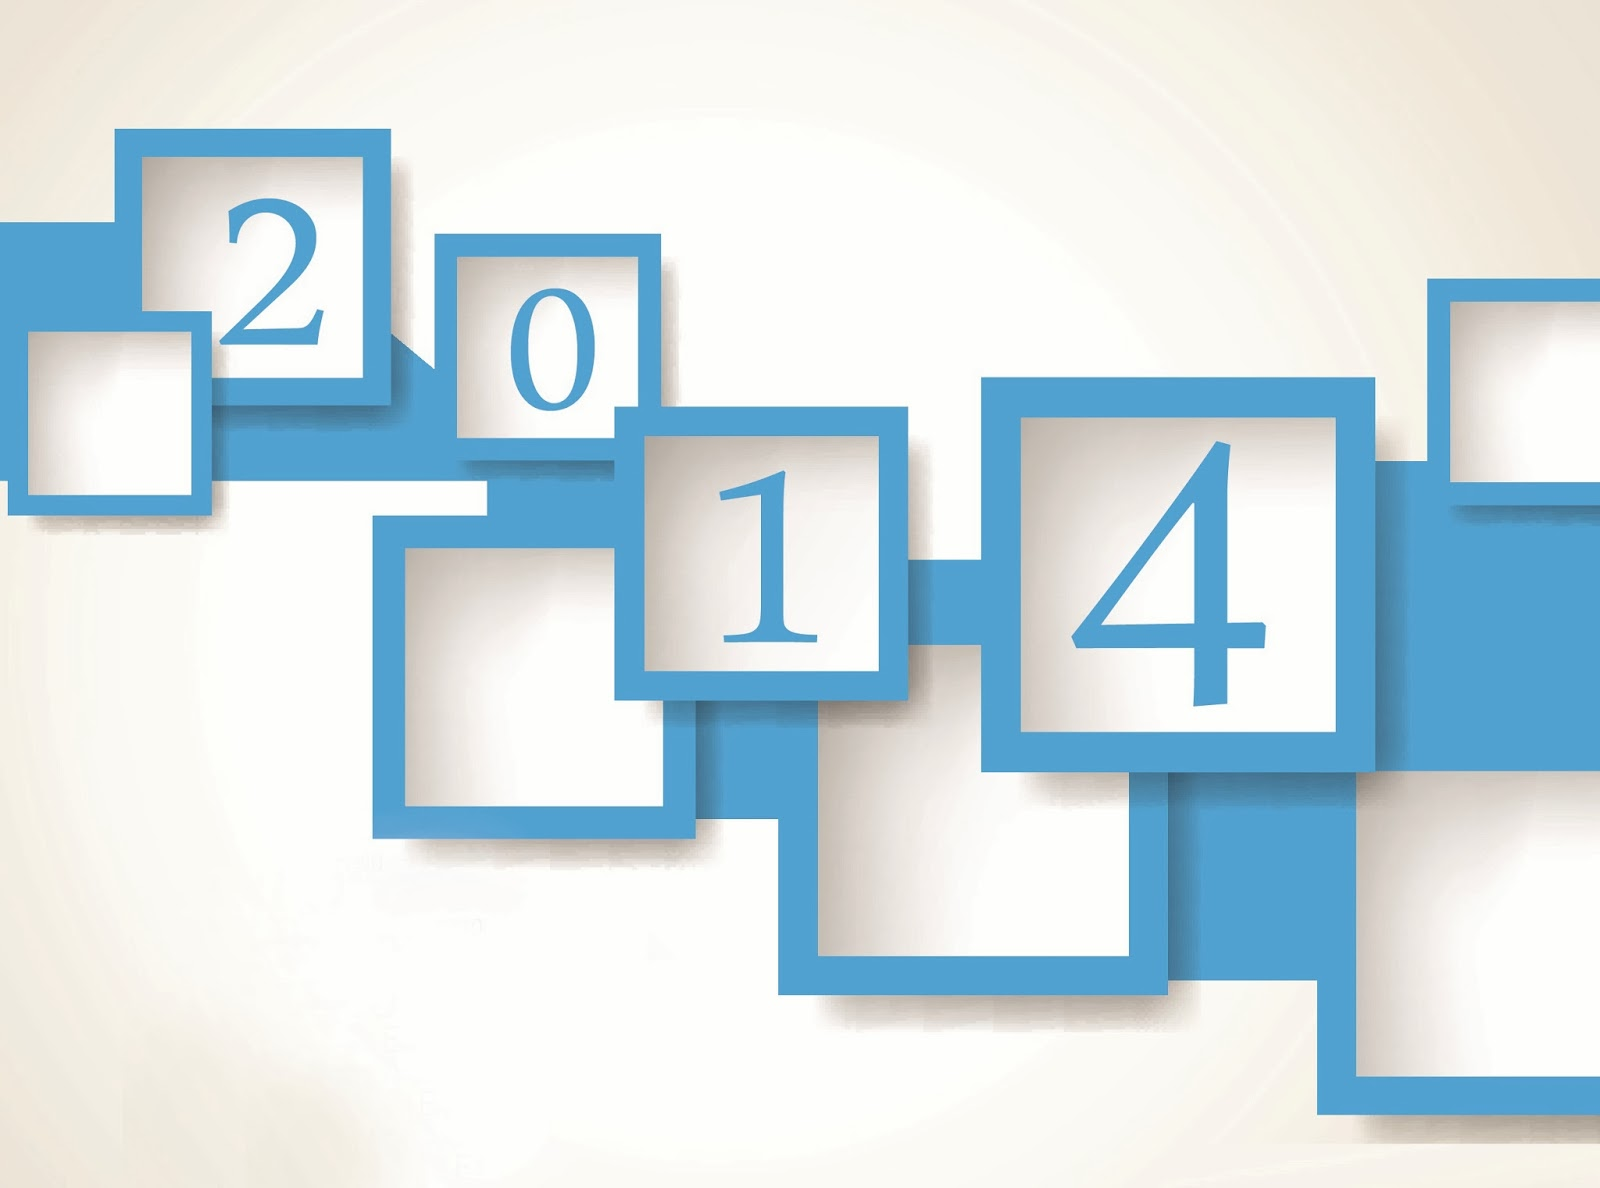 Happy new year 2014 wallpaper collection free download hd happy new year 2014 wallpaper collection free download hd wallpapers voltagebd Images